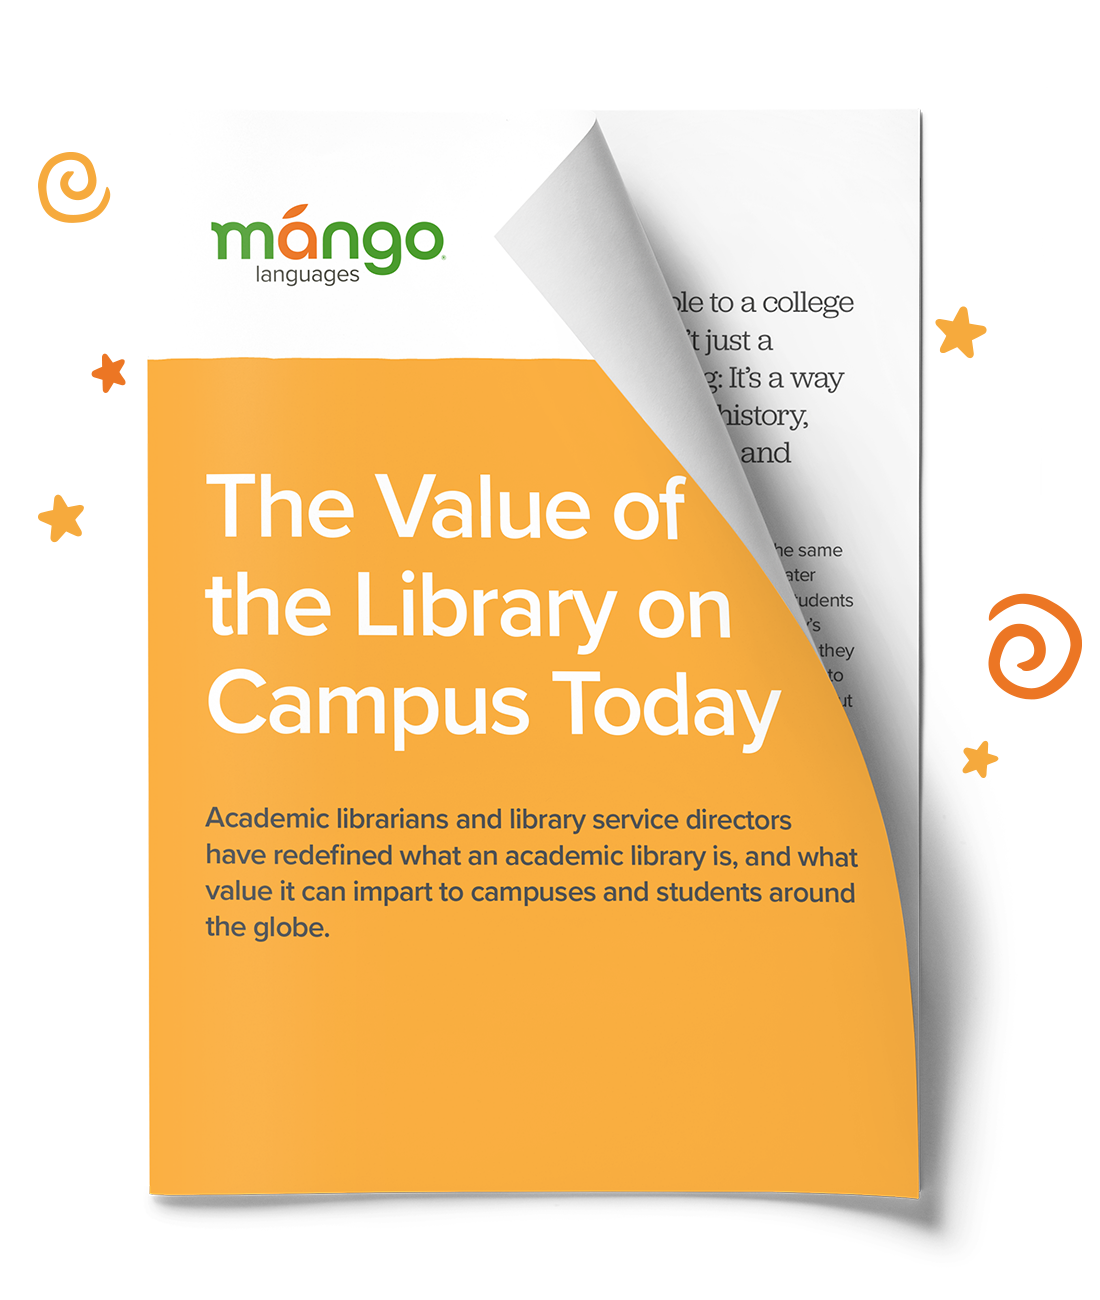 mango-inbound-value-of-library.png